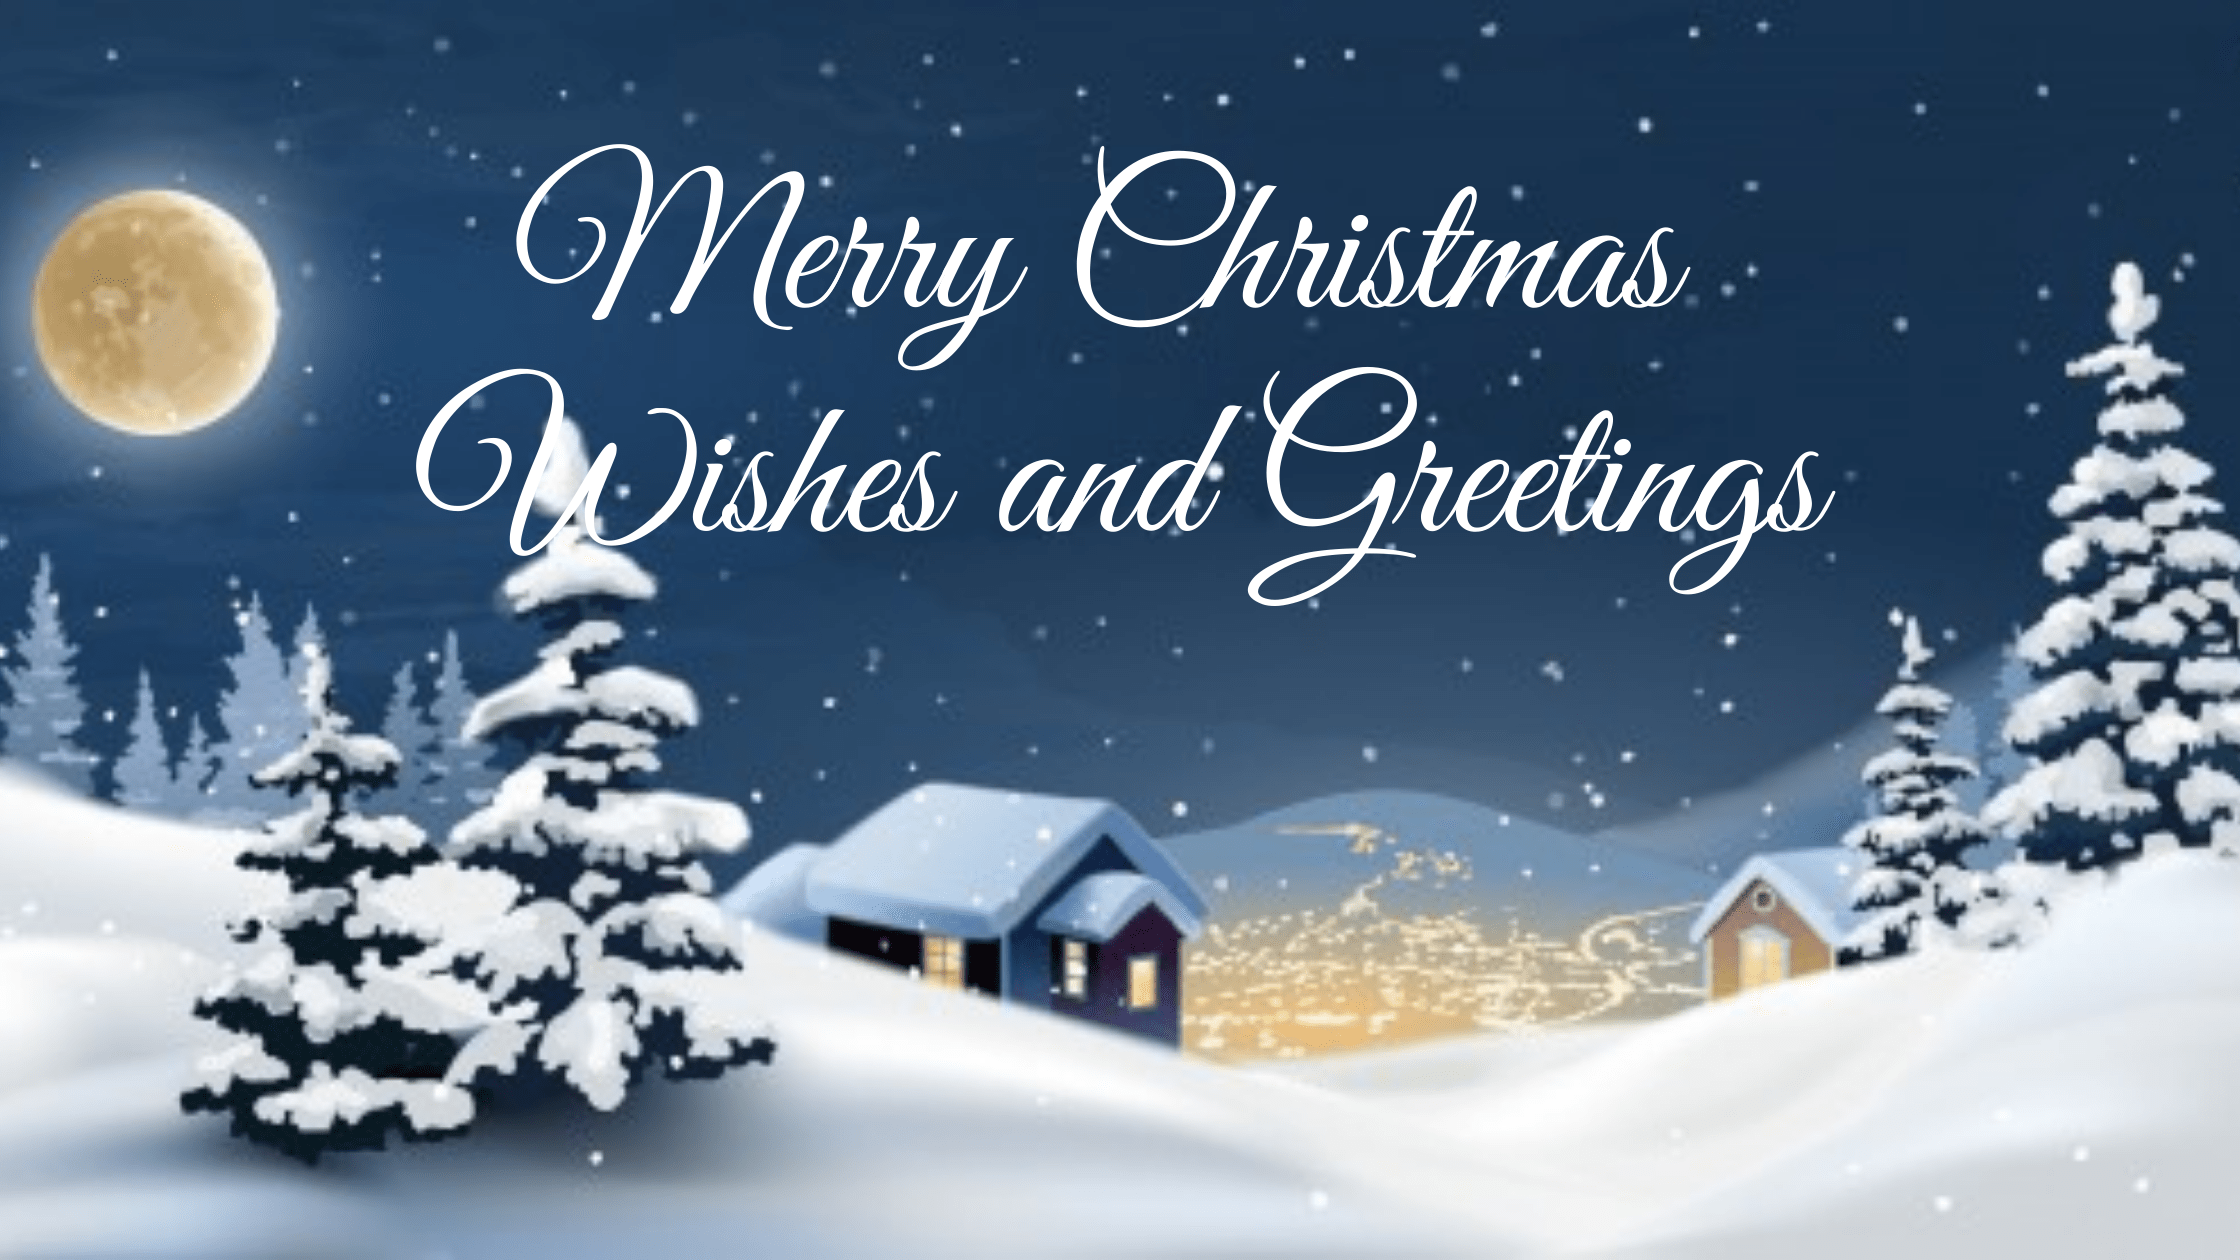 Merry Christmas Messages and Wishes for Friends and loved ones